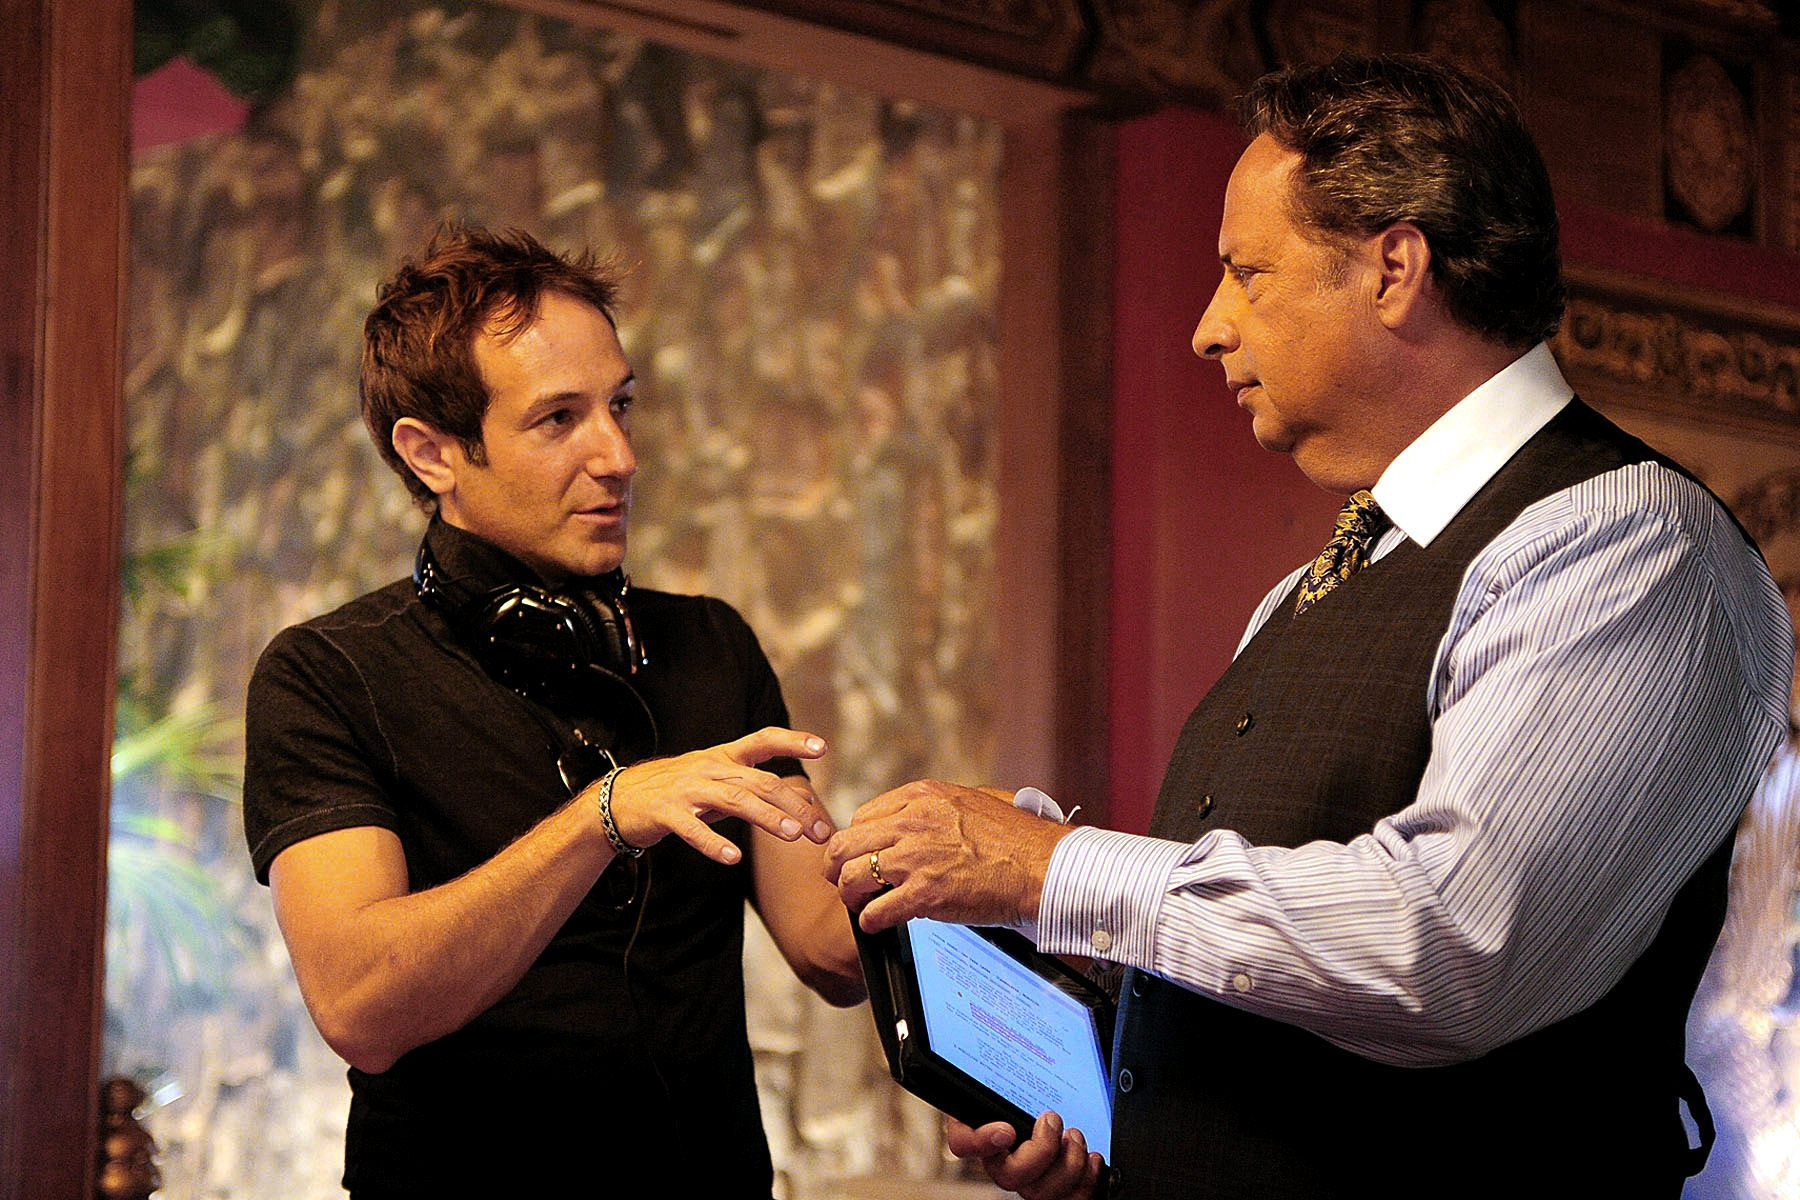 Director Bryan Fogel directing Jon Lovitz on the set of his film Jewtopia.